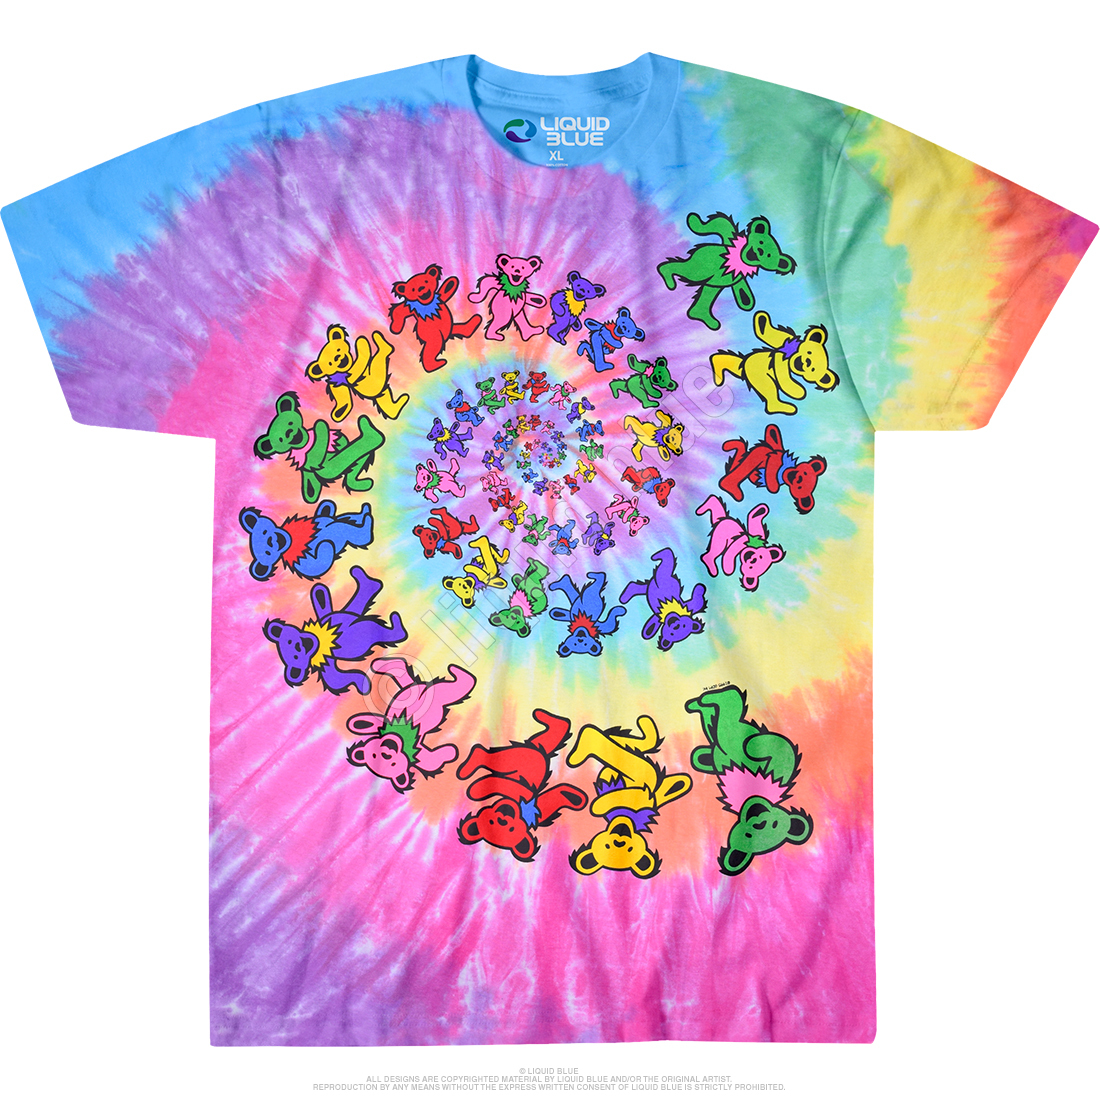 Grateful Dead Spiral Bears Tie Dye T Shirt – Have to Have ...